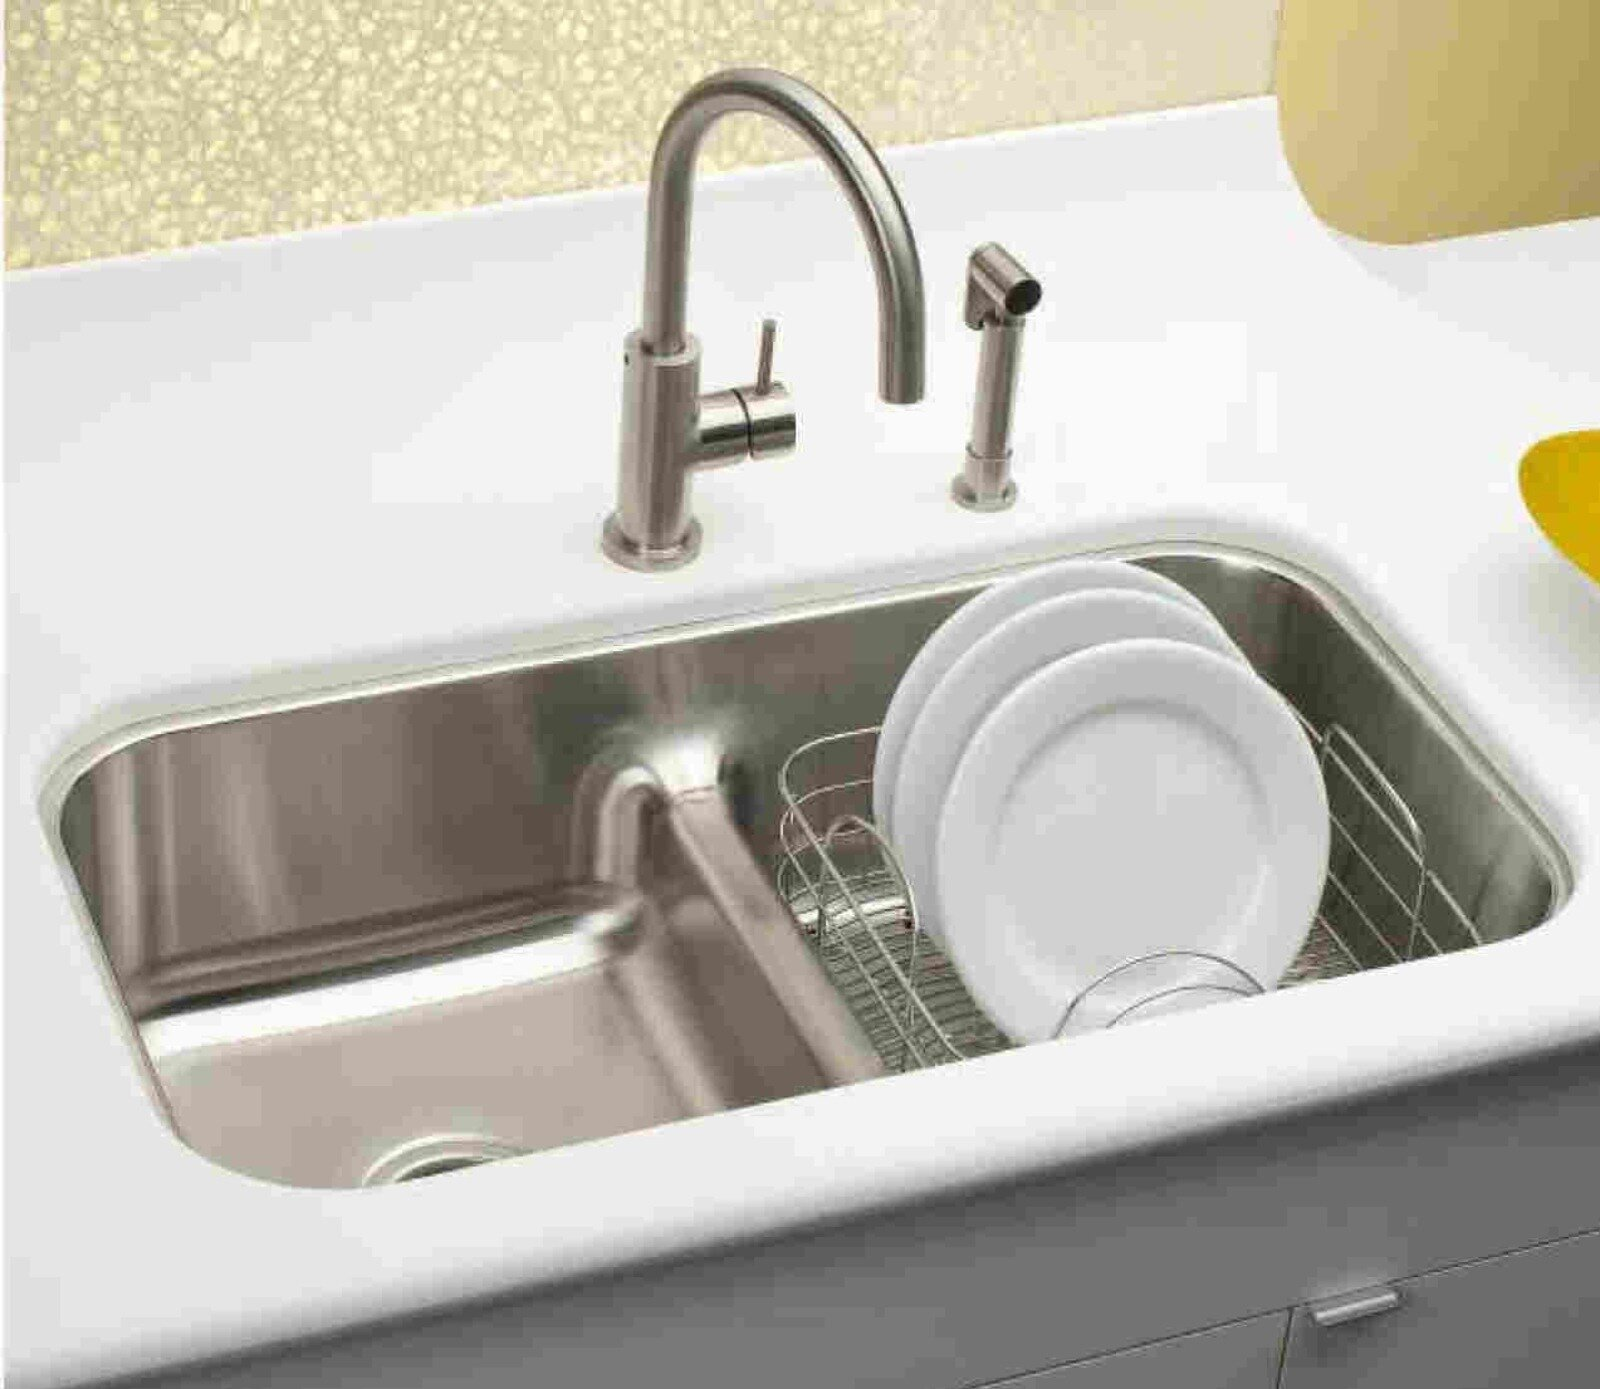 Kitchen stainless steel kitchen sink unit kitchen sinks stainless steel farmhouse stainless - Designer sink image ...